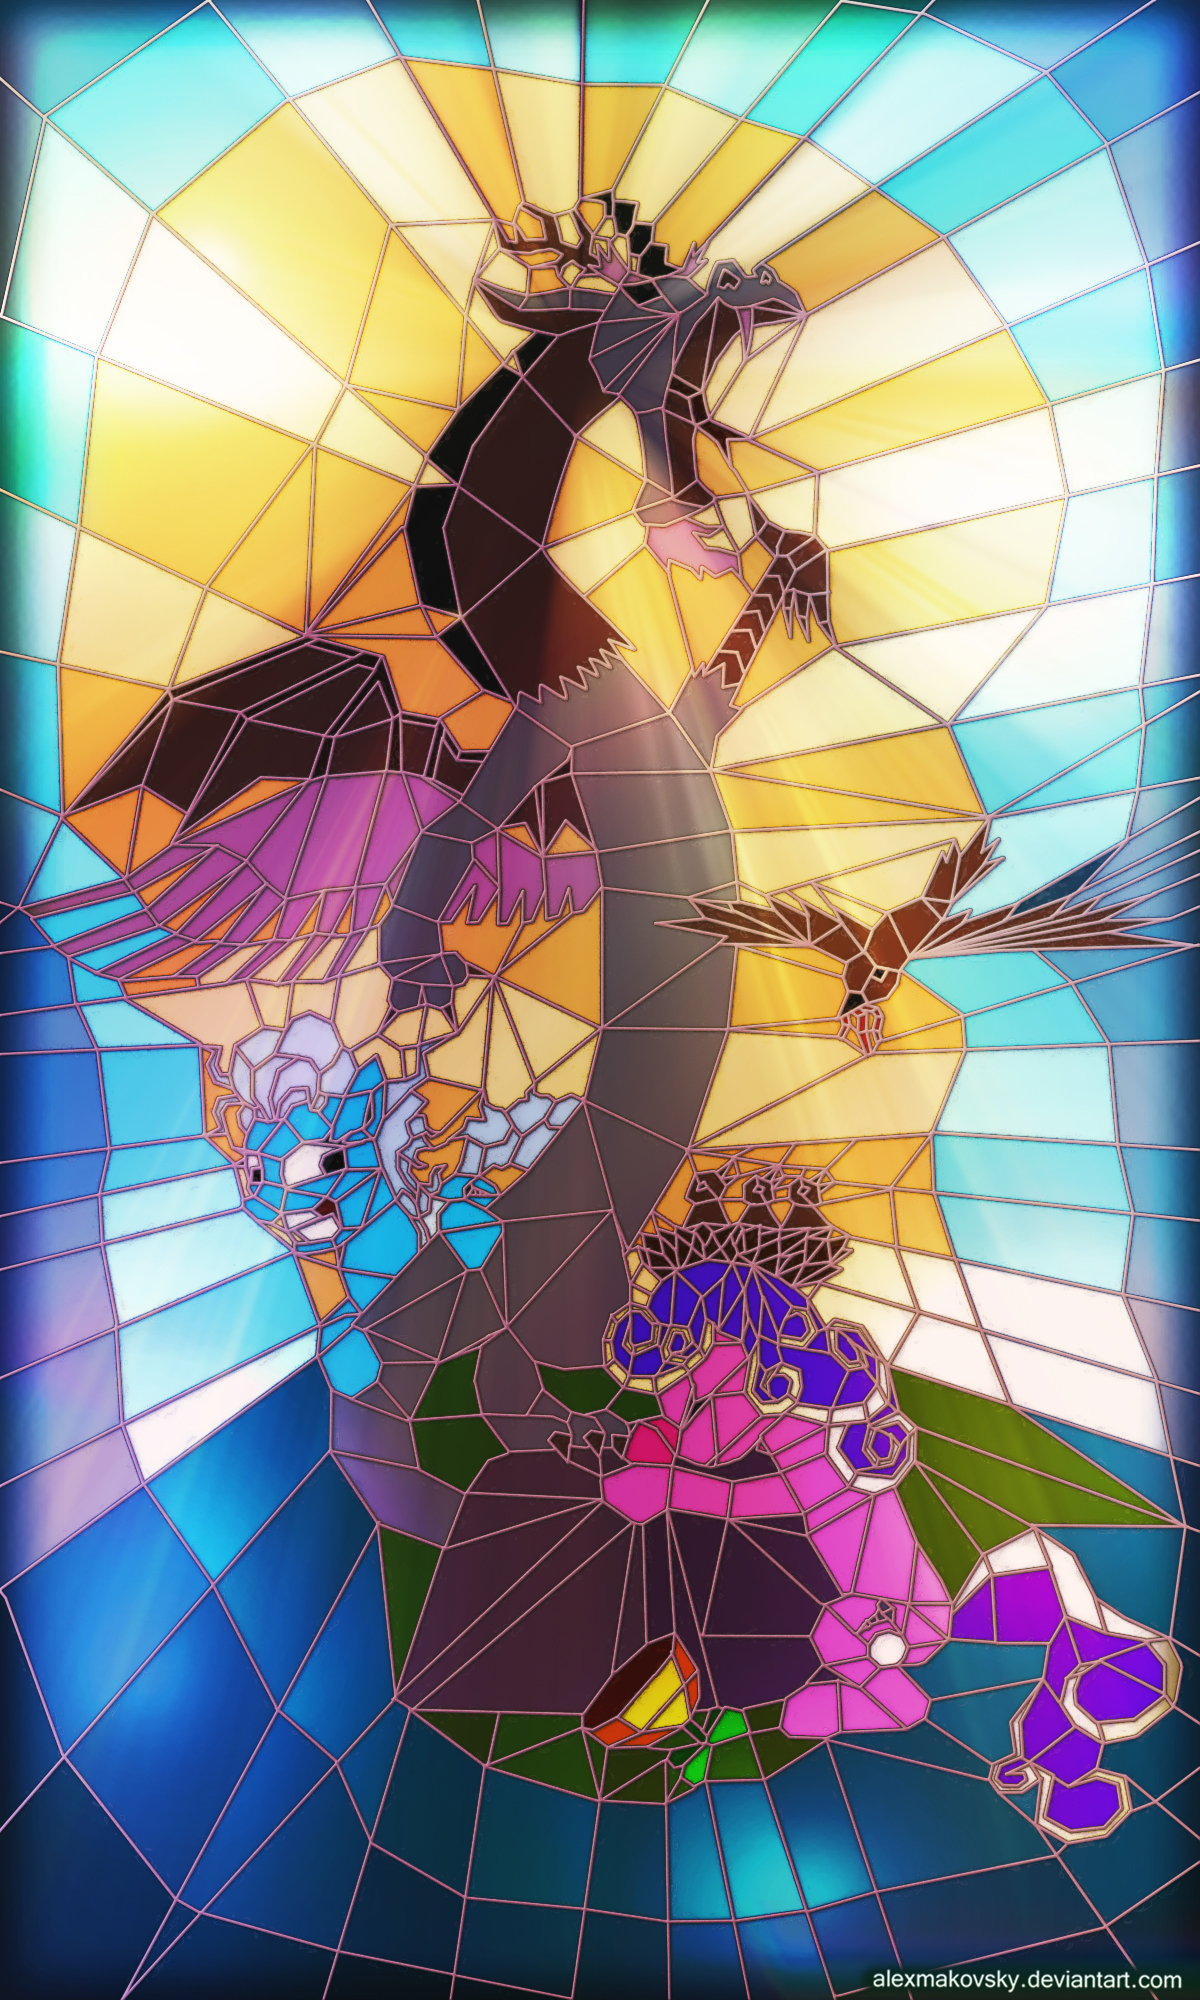 Stained glass window with Discord n Screwball